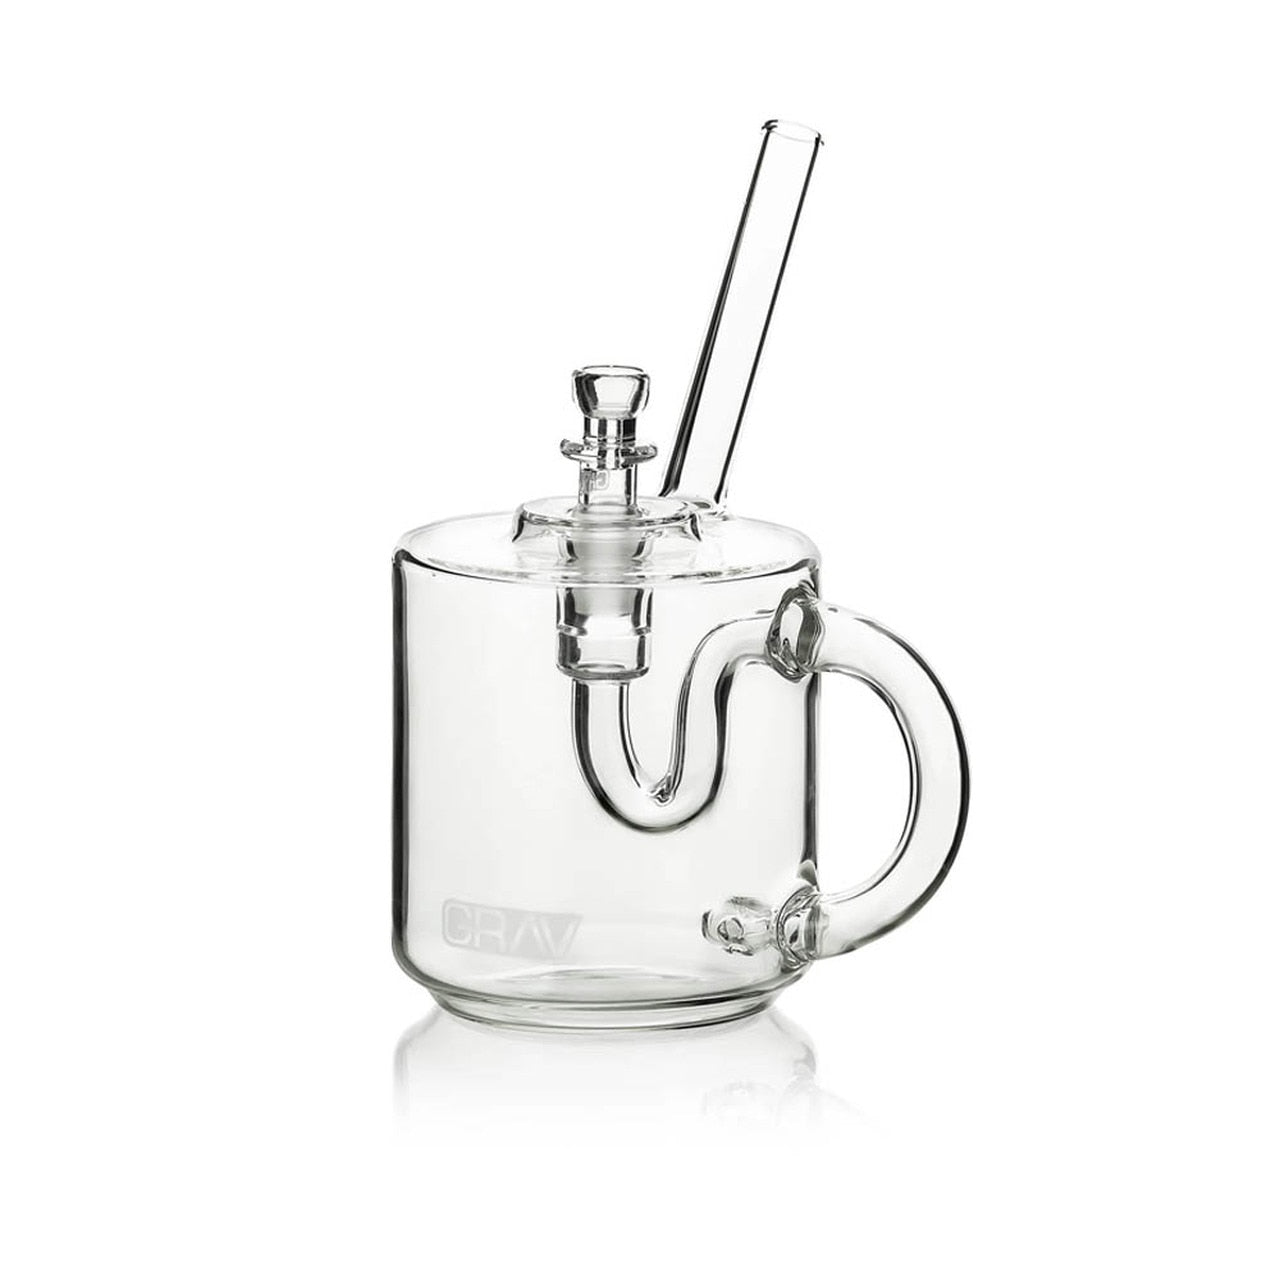 "GRAV Sip Series - 7"" Coffee Mug Bubbler - Clear (14mm Bowl) Fixed 4-Hole - Lake shore vibe"